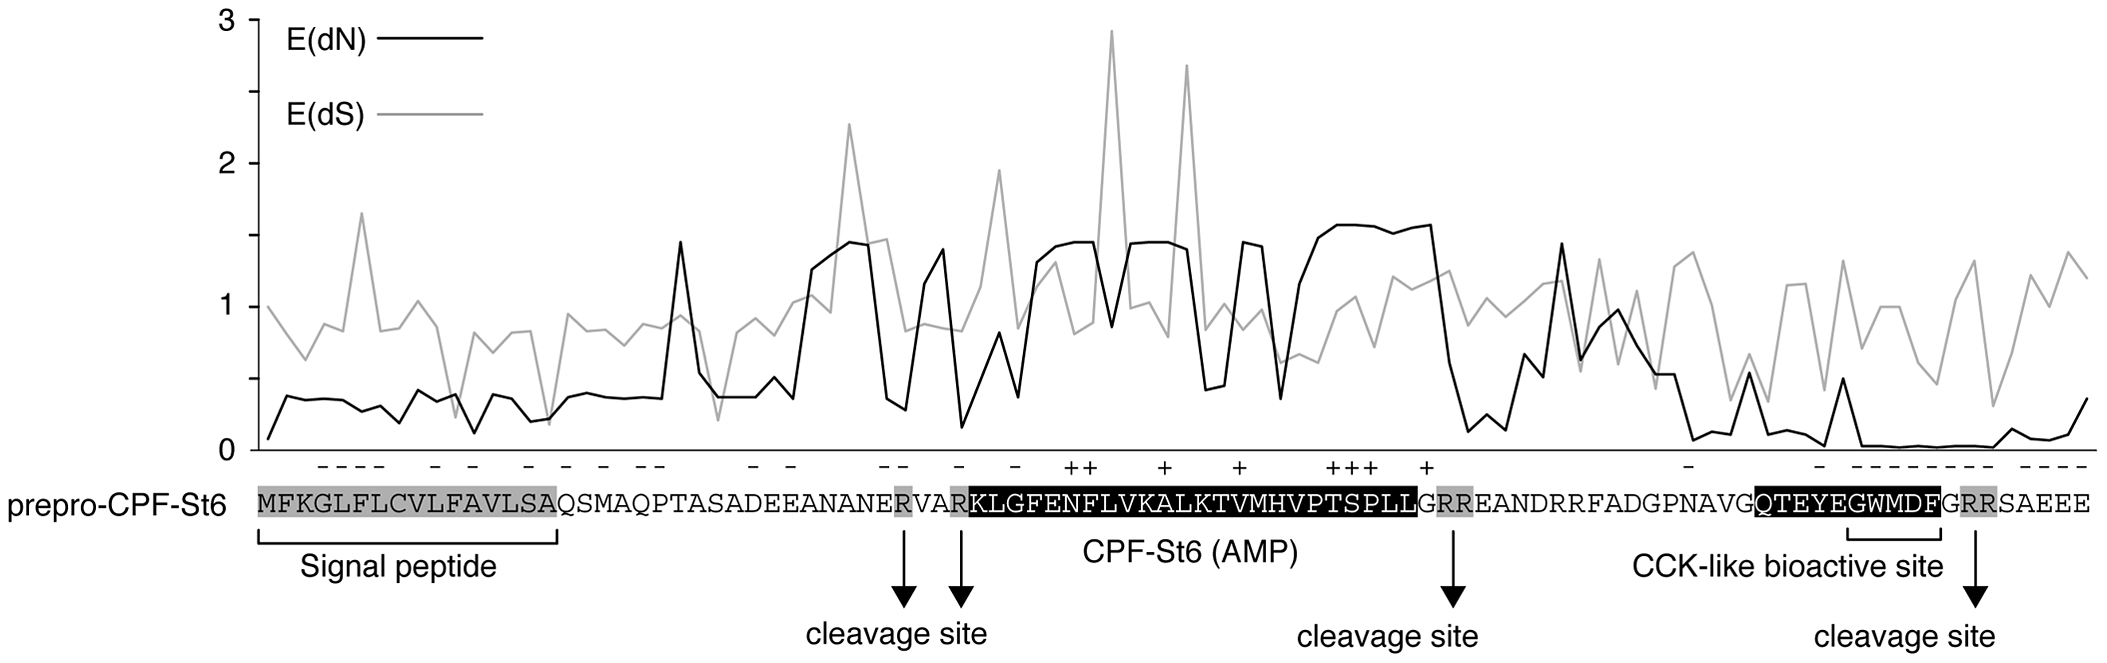 Patterns of diversifying and purifying selection in pipid AMP/HLP precursor proteins.